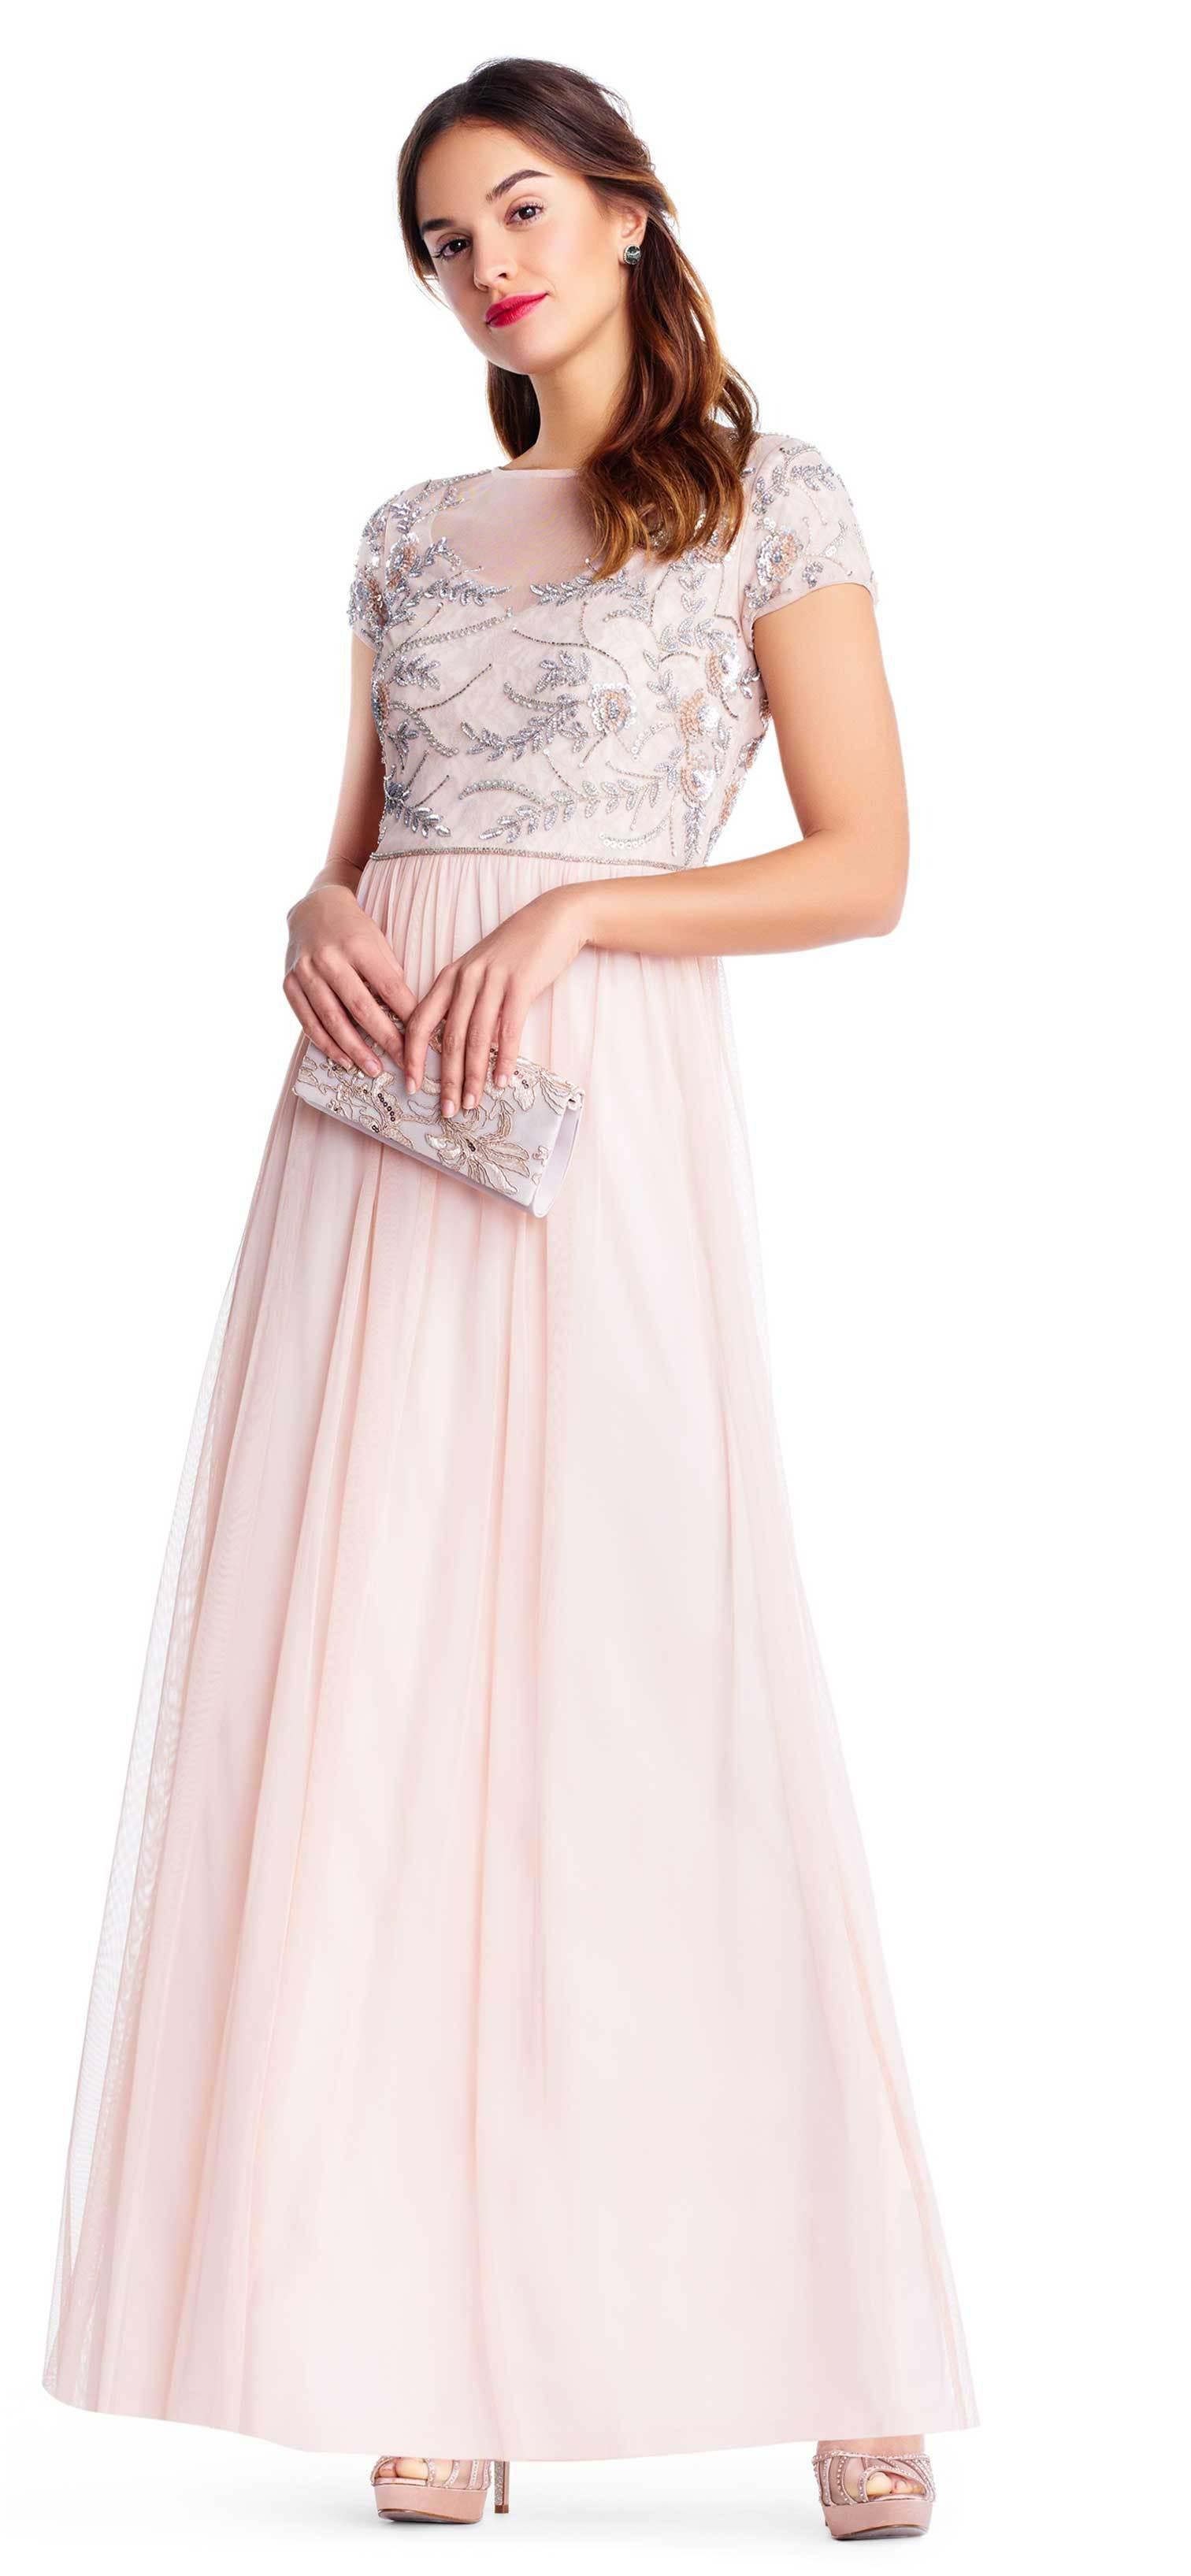 e10fdaaaca8 Adrianna Papell. Women s Pink Ap1e202874 Embellished Illusion Tulle A-line  Dress